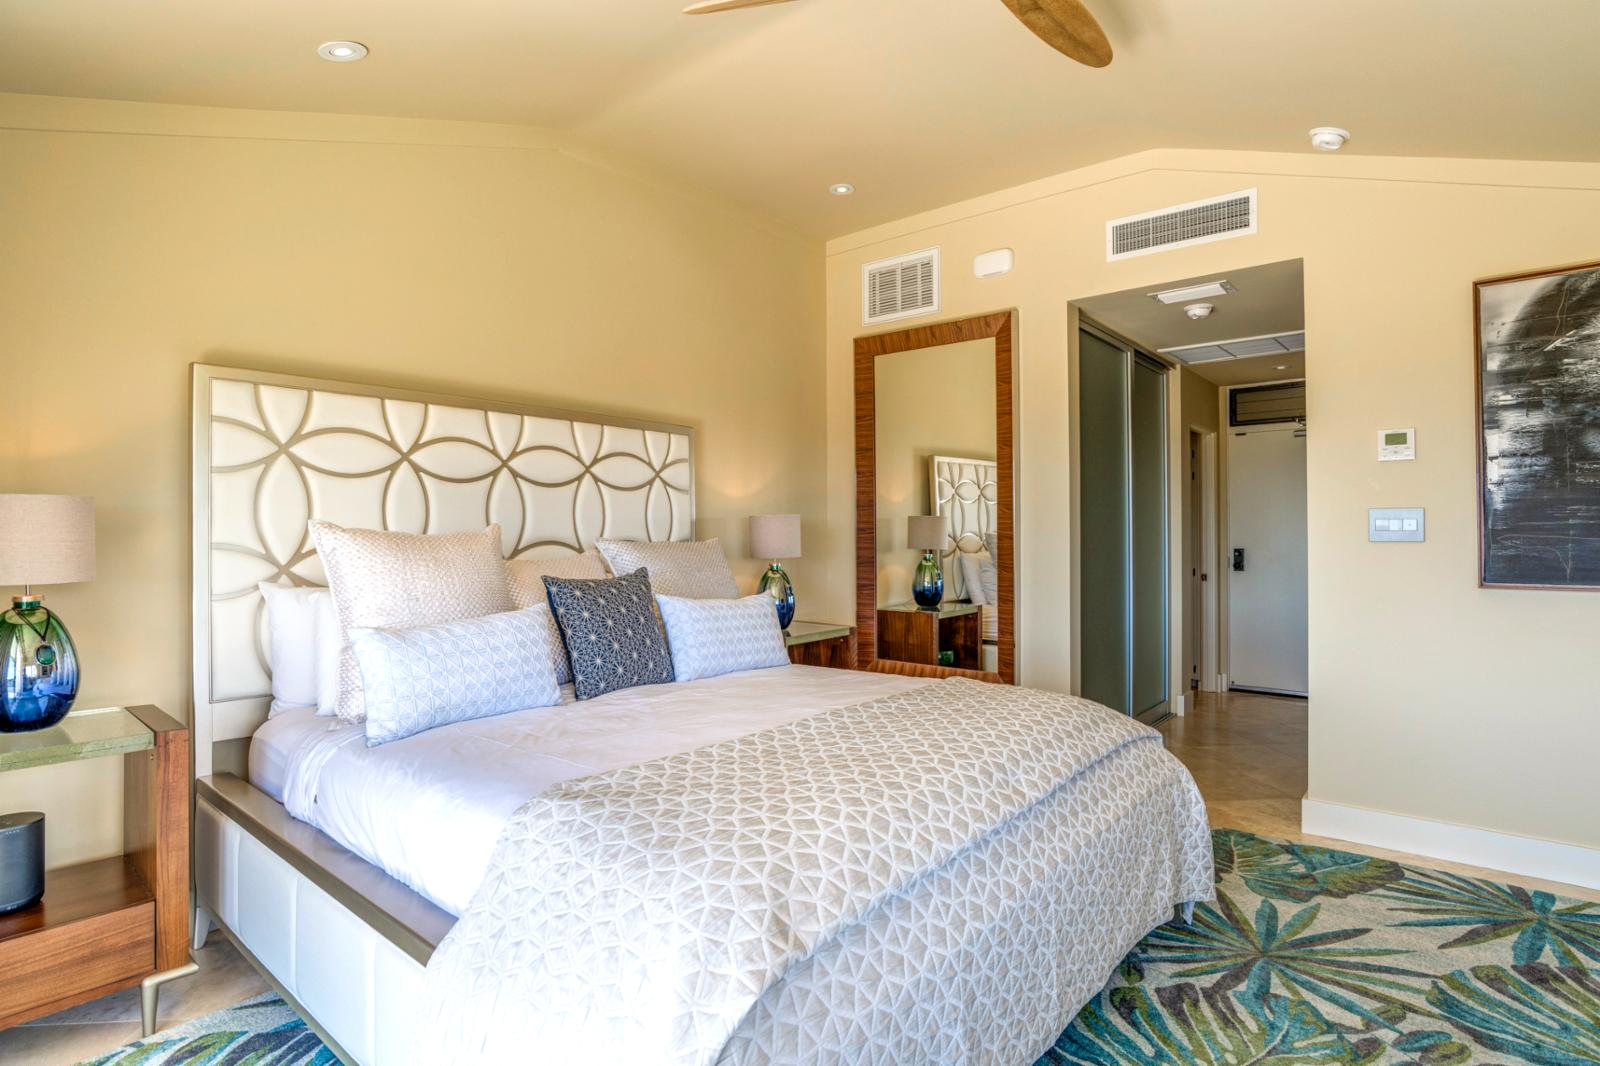 Elegant interior upgrades, jaw dropping master bedroom ocean views